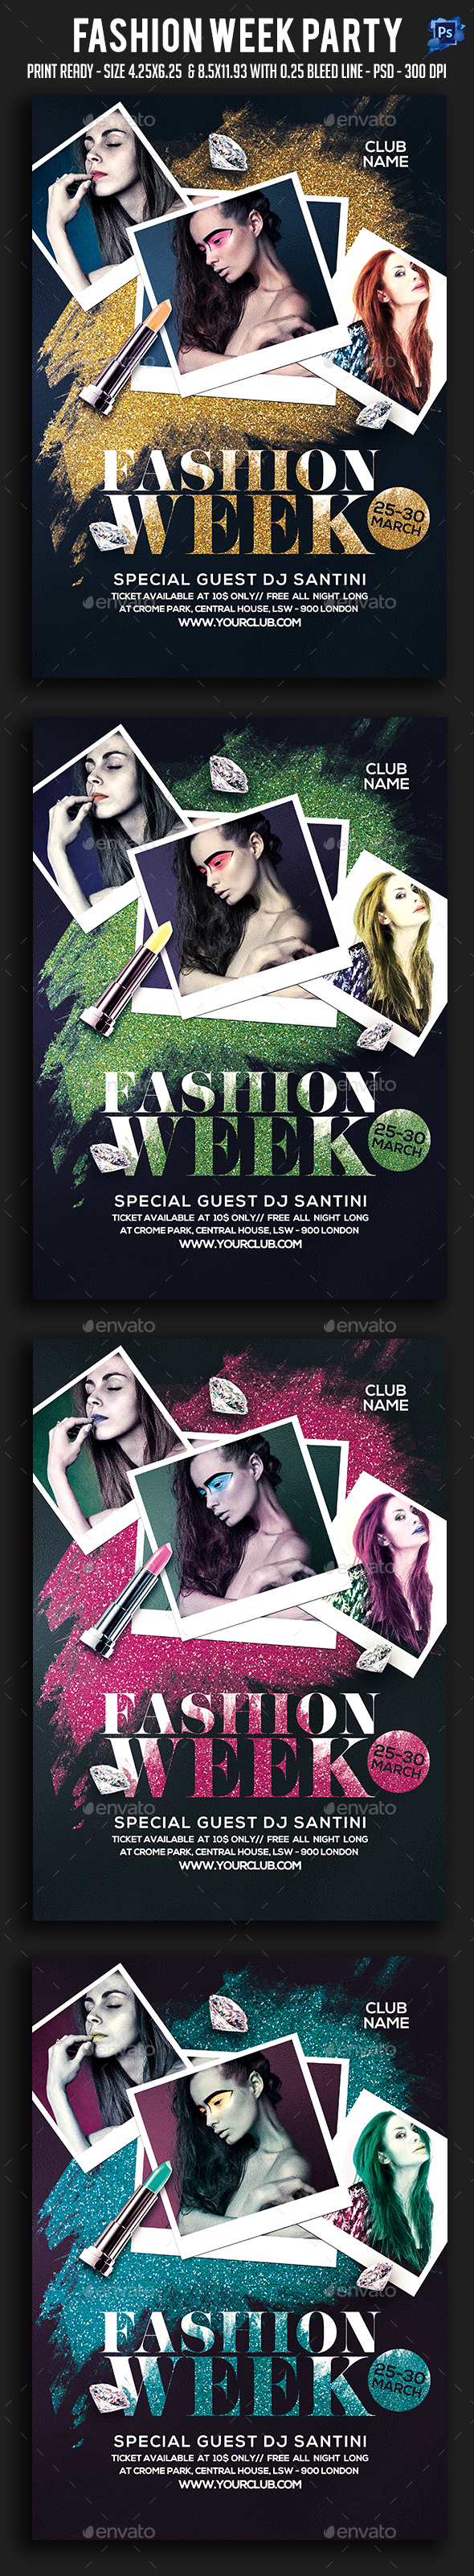 Fashion Week Party Flyer - Clubs & Parties Events